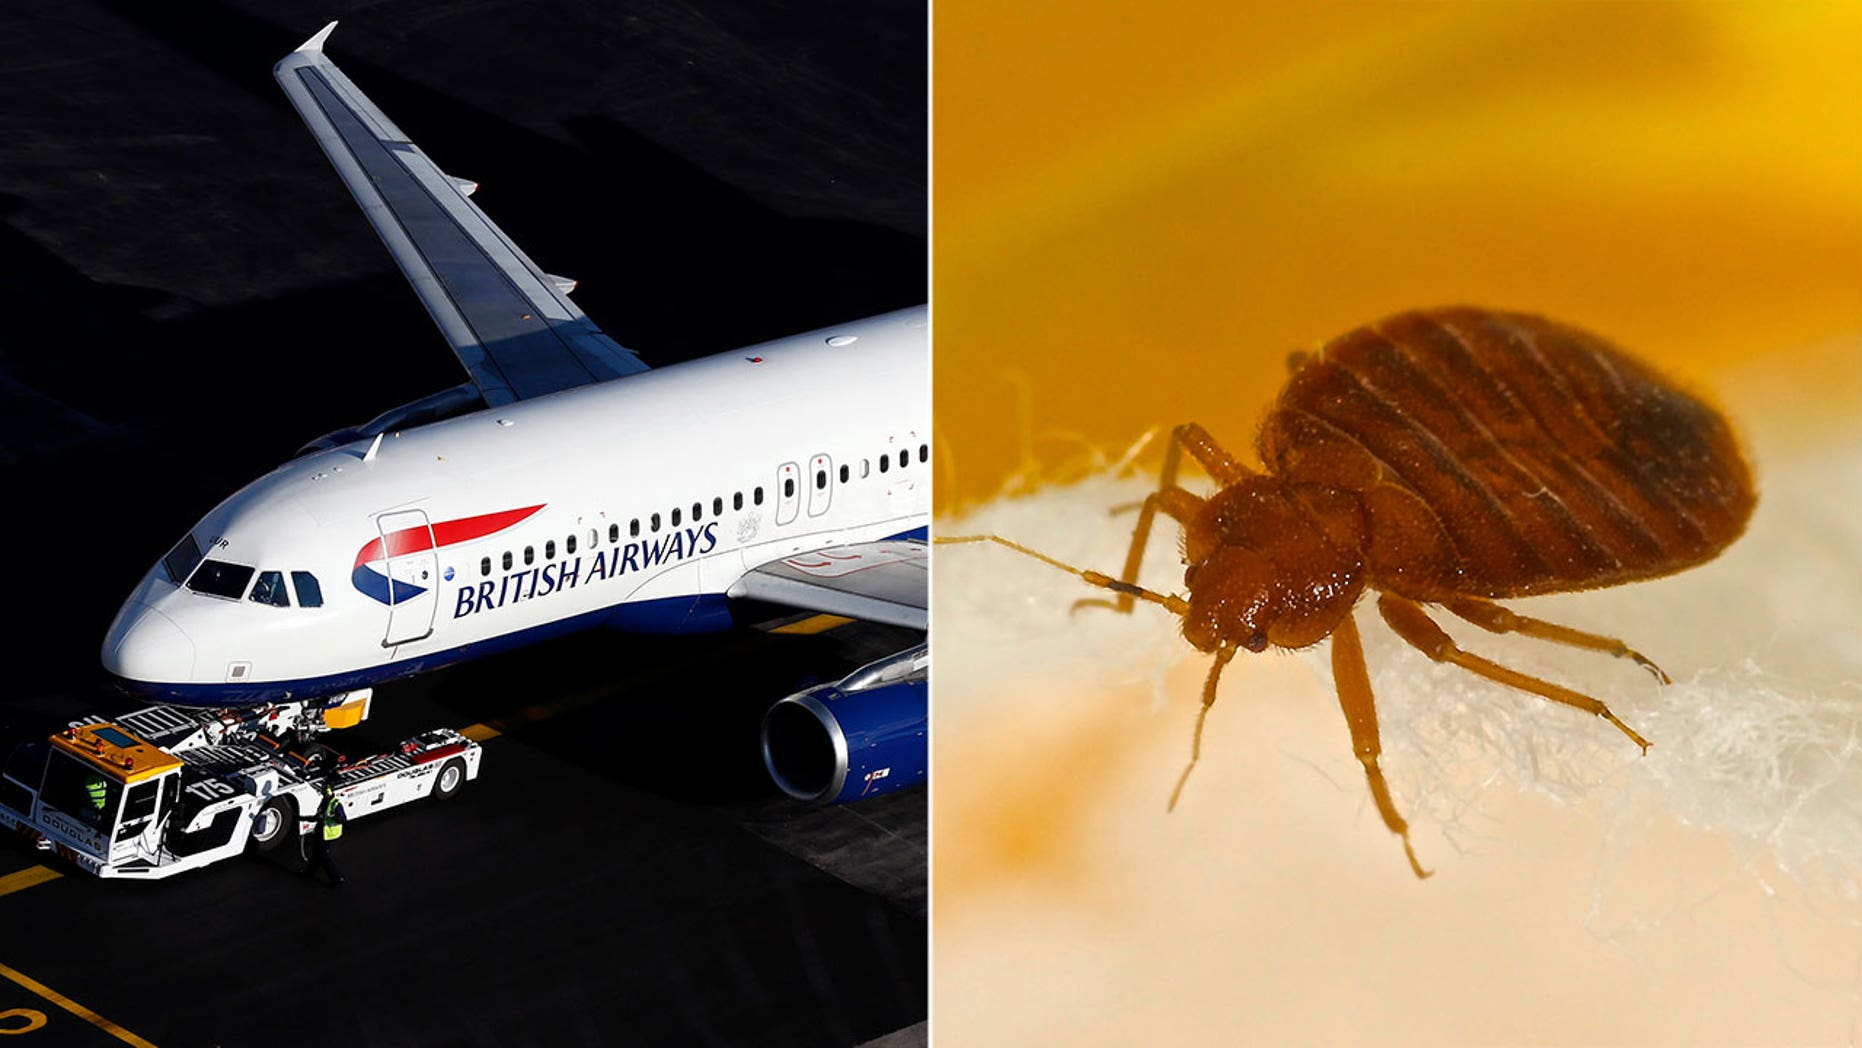 The cabin crew of a recent British Airways flight reportedly refused to fly after spying bedbugs in the cabin.